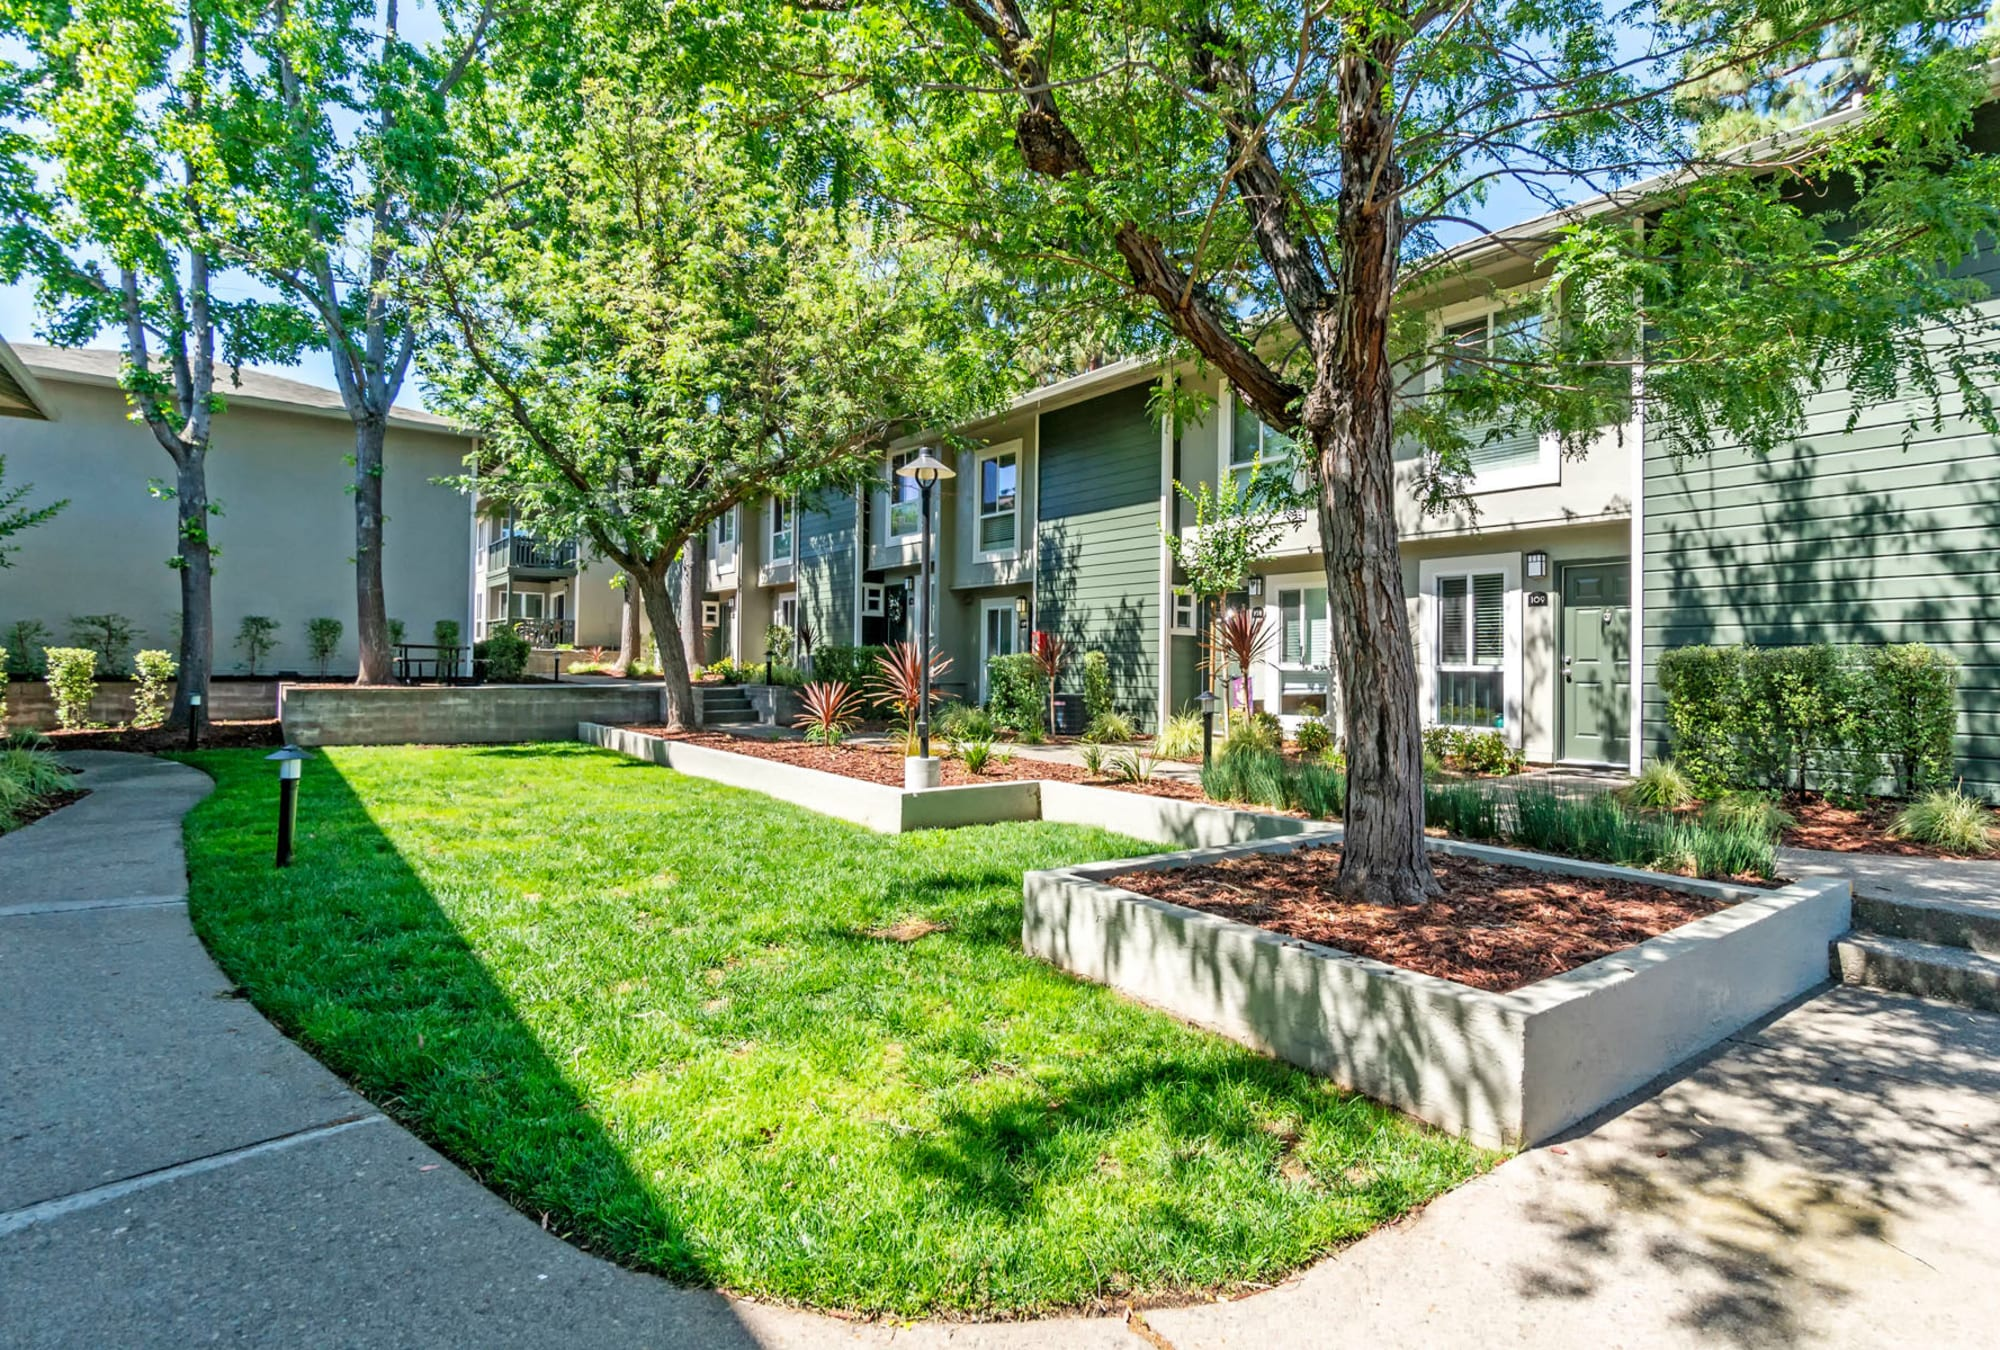 Mature trees and professionally maintained landscaping at an exterior courtyard at Pleasanton Glen Apartment Homes in Pleasanton, California